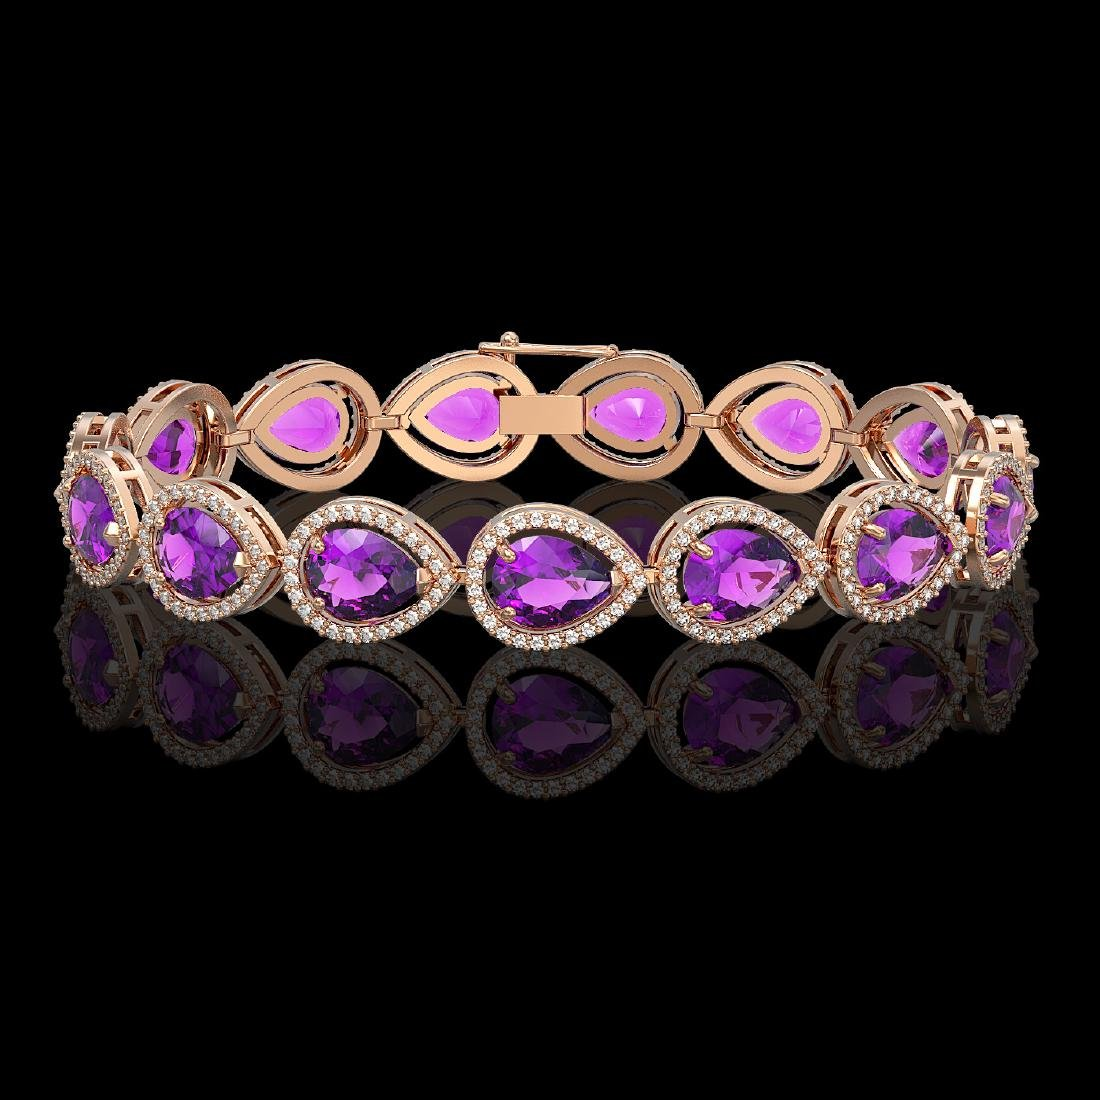 20.3 CTW Amethyst & Diamond Halo Bracelet 10K Rose Gold